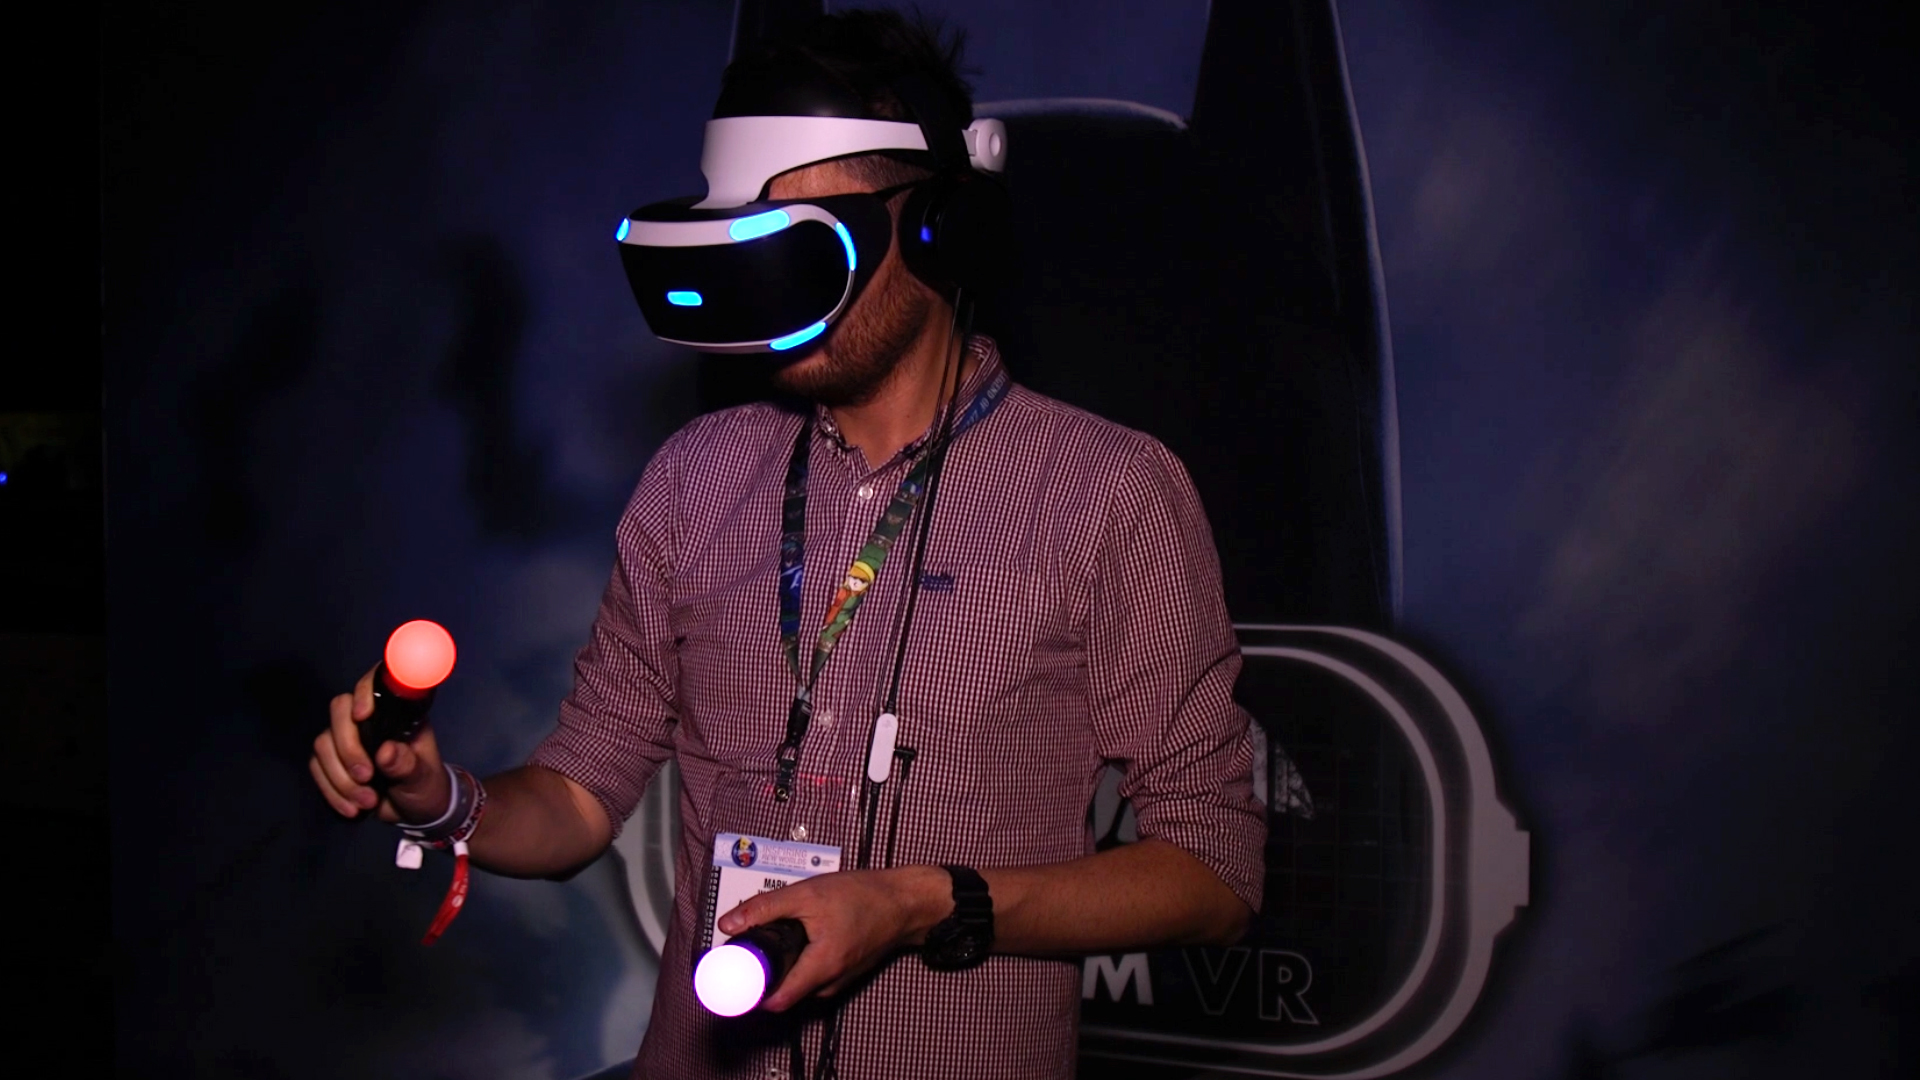 The PlayStation VR.